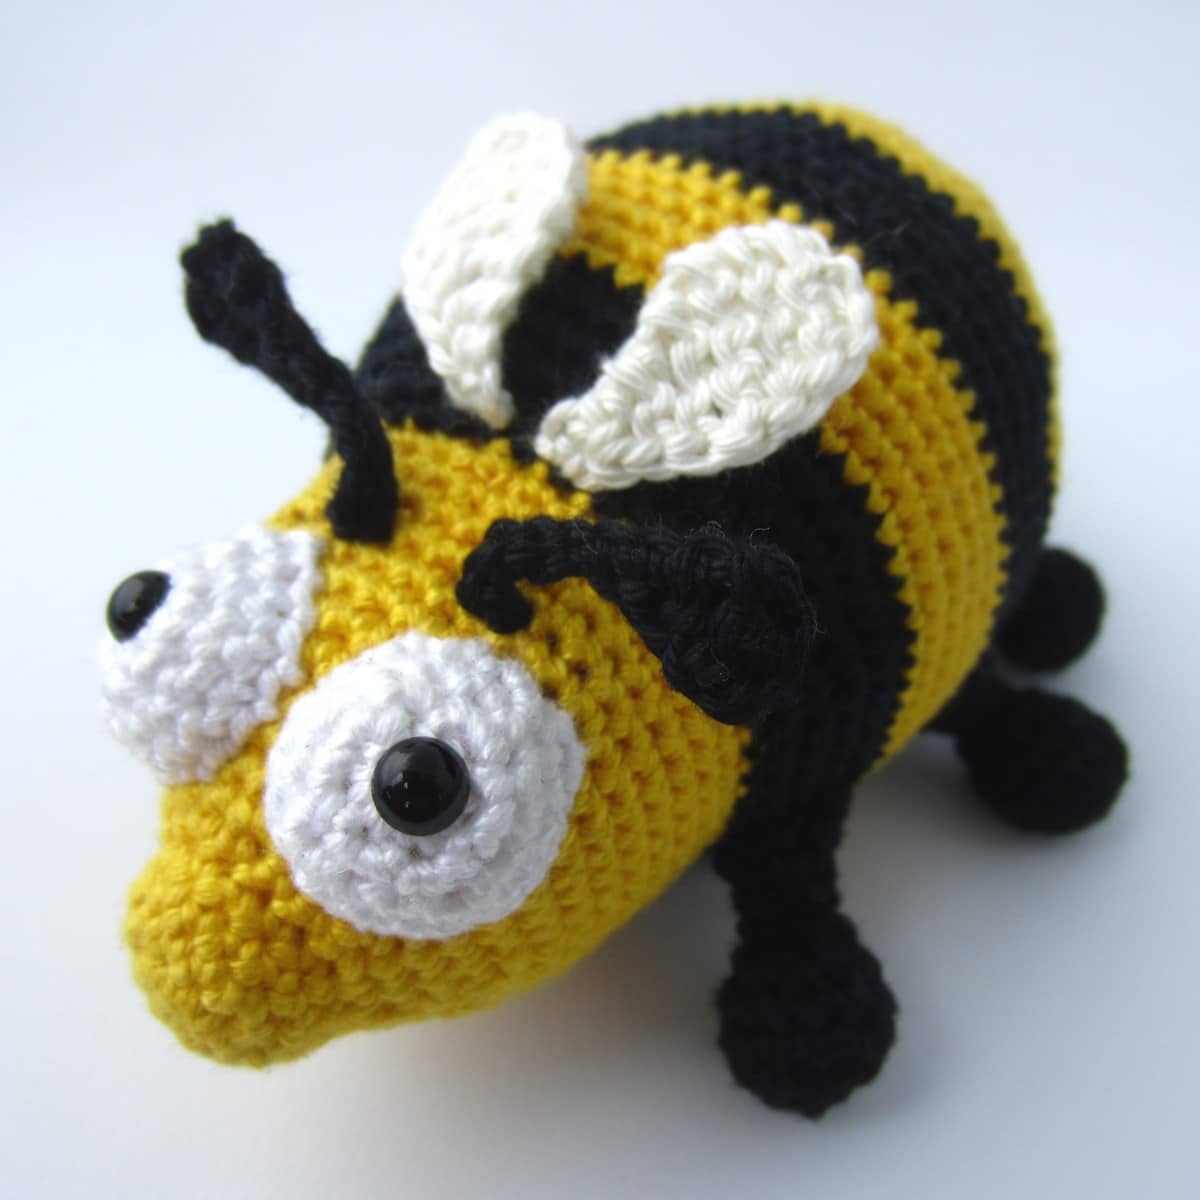 Amigurumi Pattern Bee : Supergurumi - Amigurumi Crochet Patterns